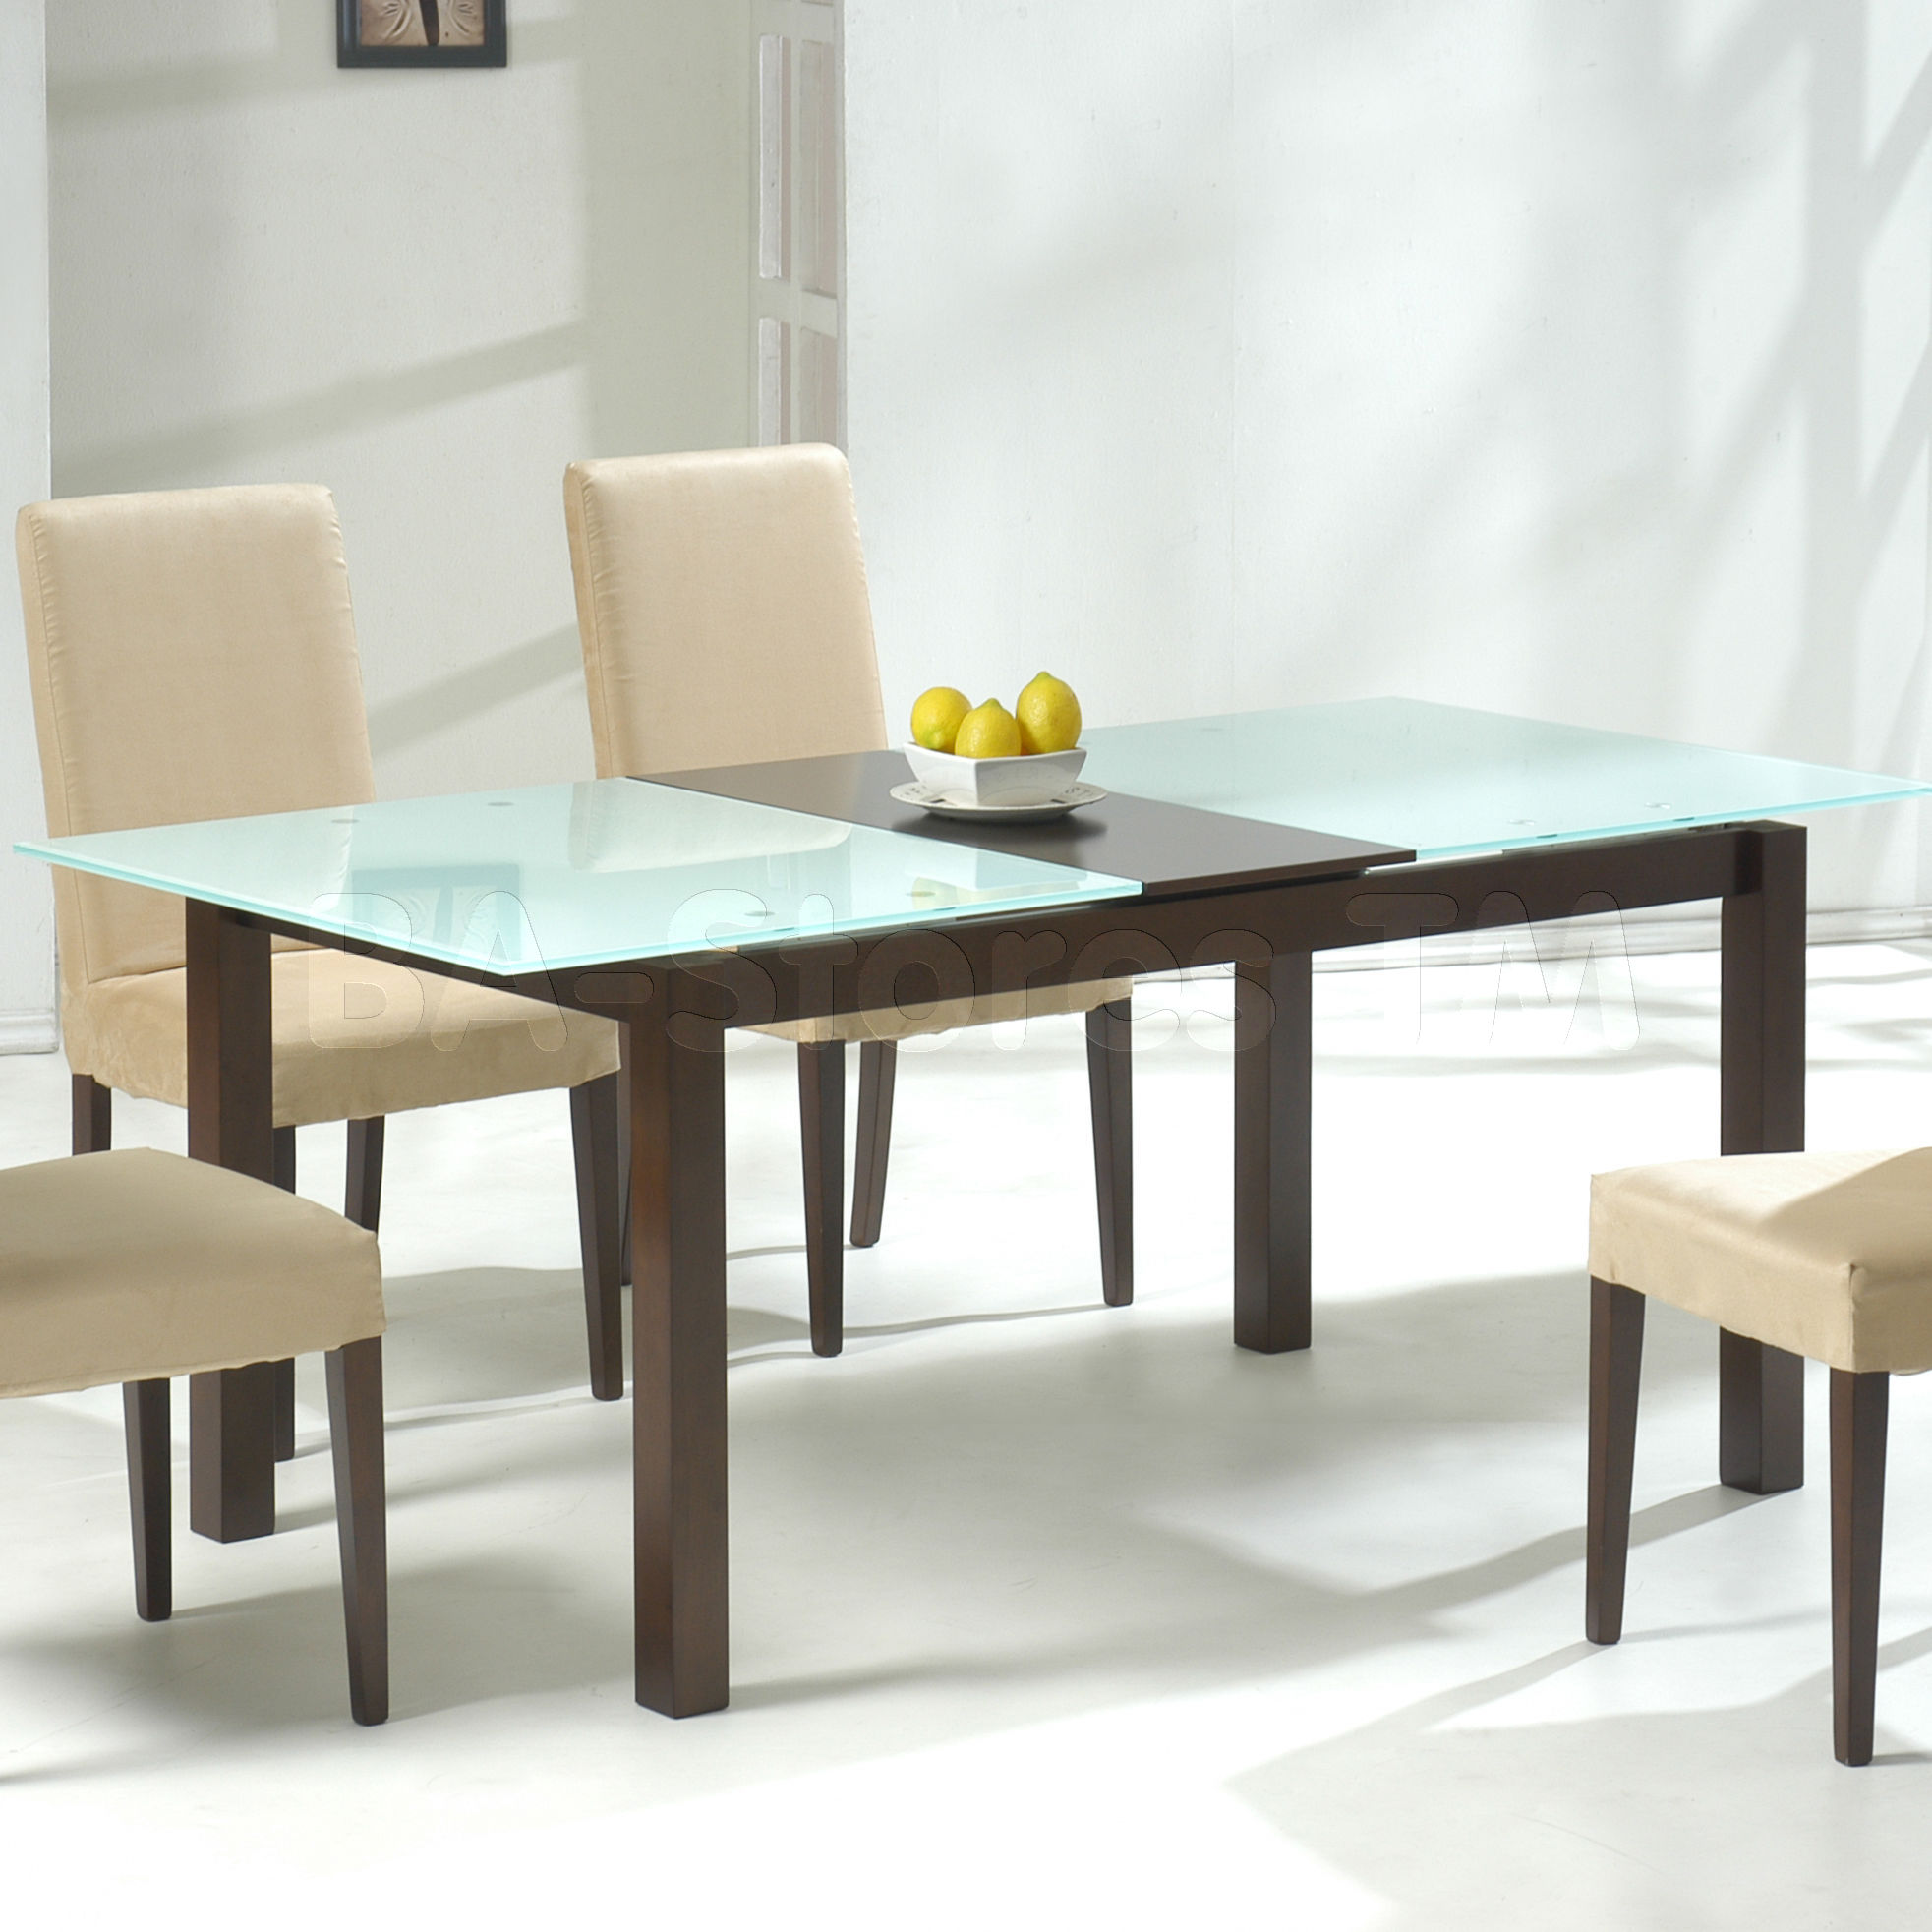 Wooden And Glass On Top Of Small Rectangular Dining Table With White Chairs